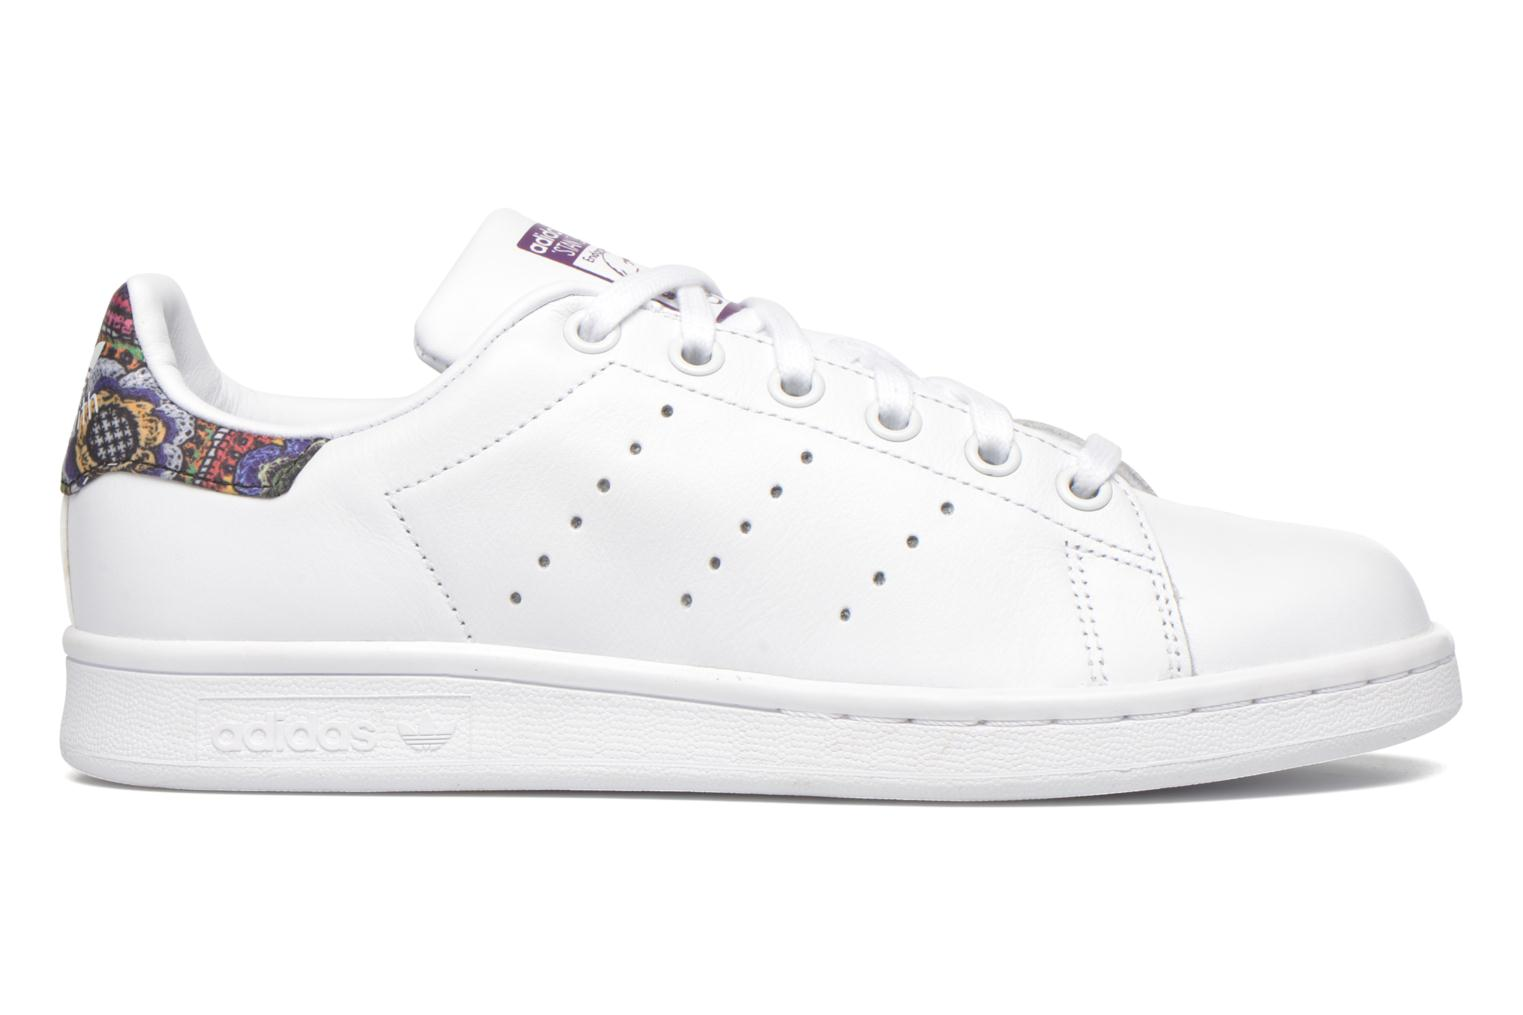 Stan Smith W Ftwbla/Ftwbla/Grimoy